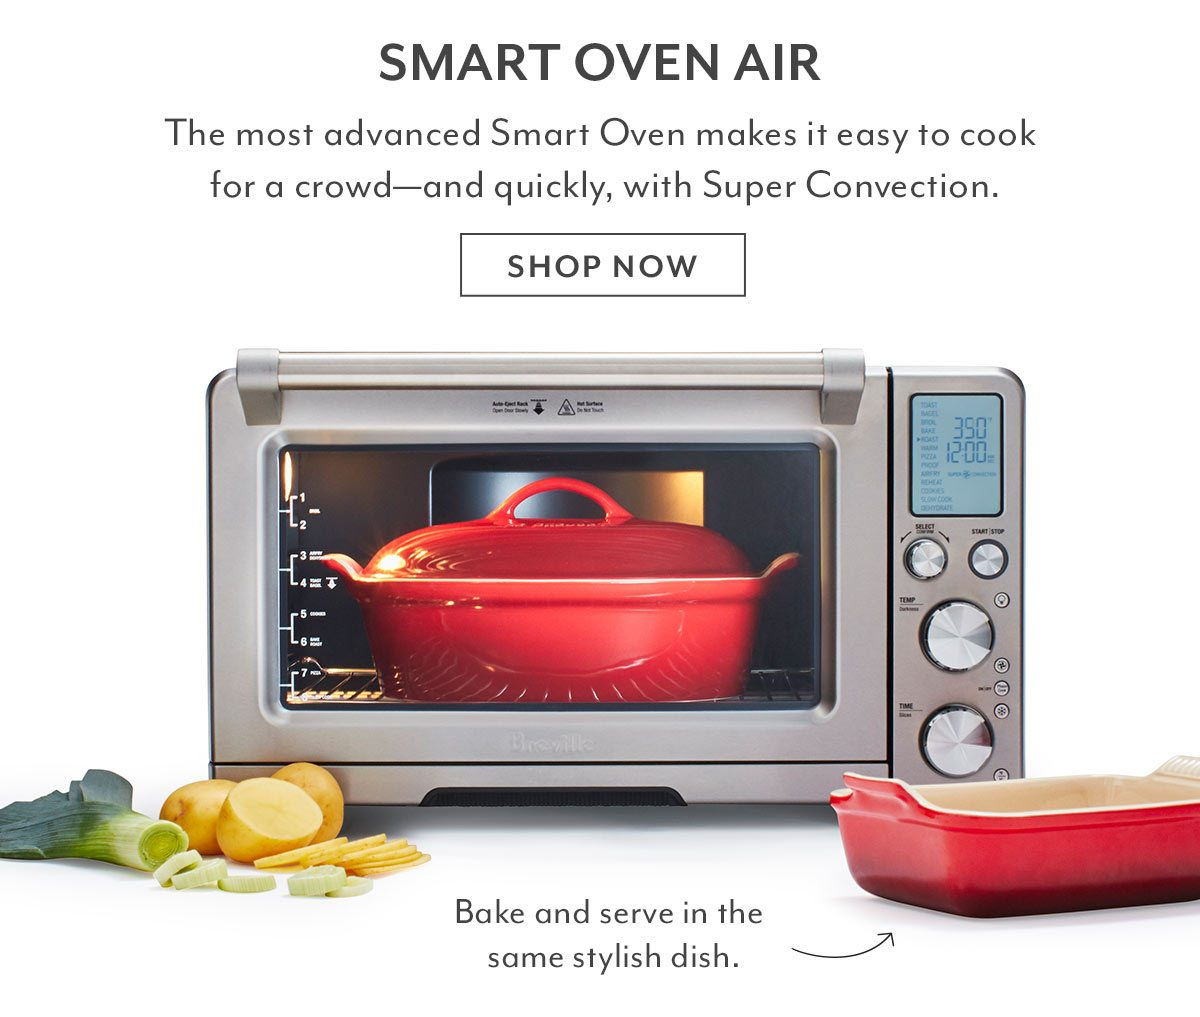 Smart Oven Air